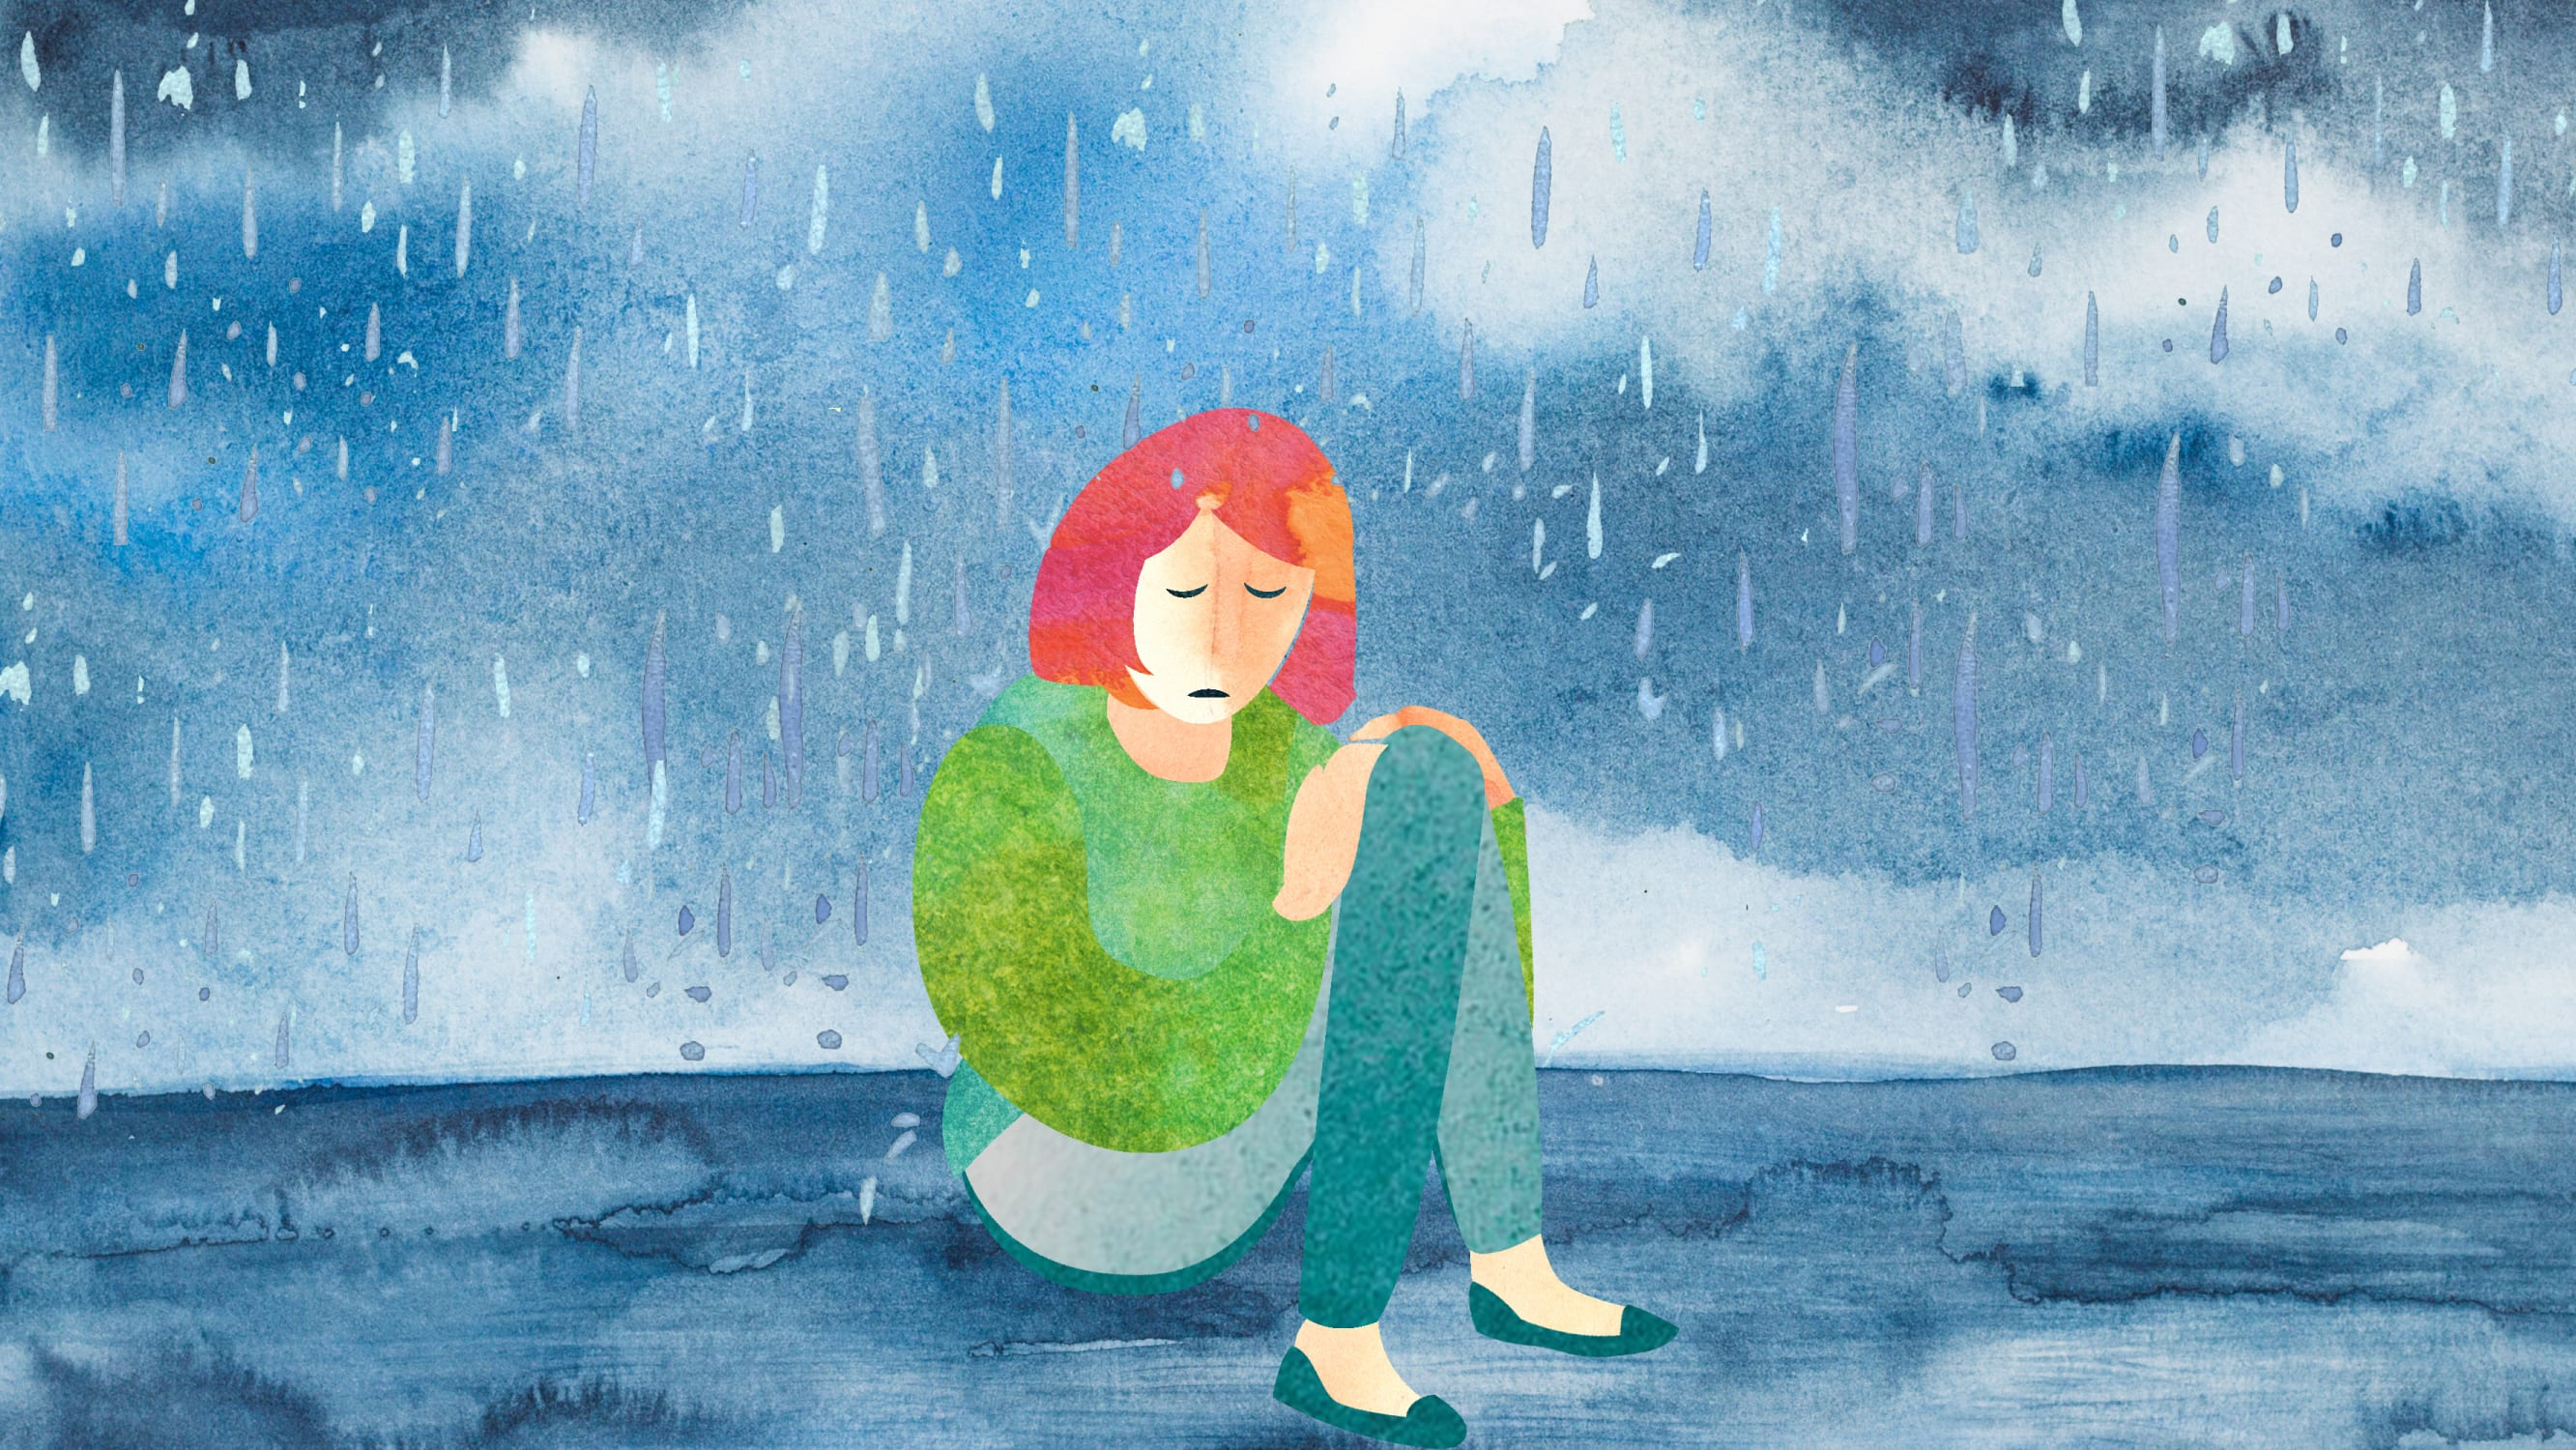 An illustration of a woman suffering from depression who might be helped by esketamine